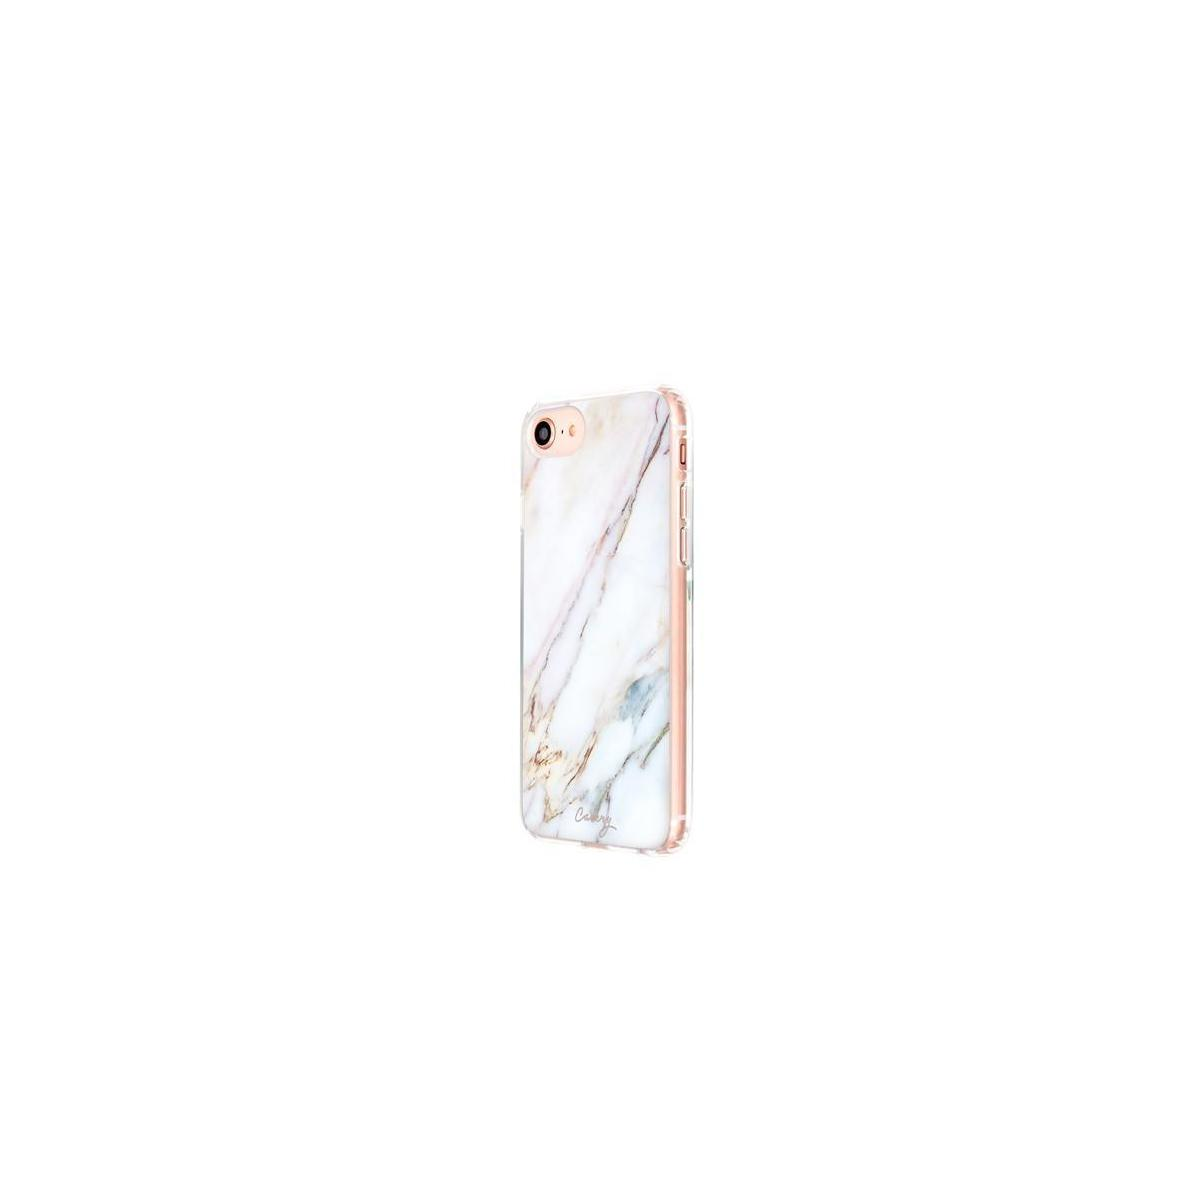 Casery Case Designed for The Apple iPhone iPhone 8/7/6/6s, Luxe (White Marble) - Slim Clear Case - Drop-Tested